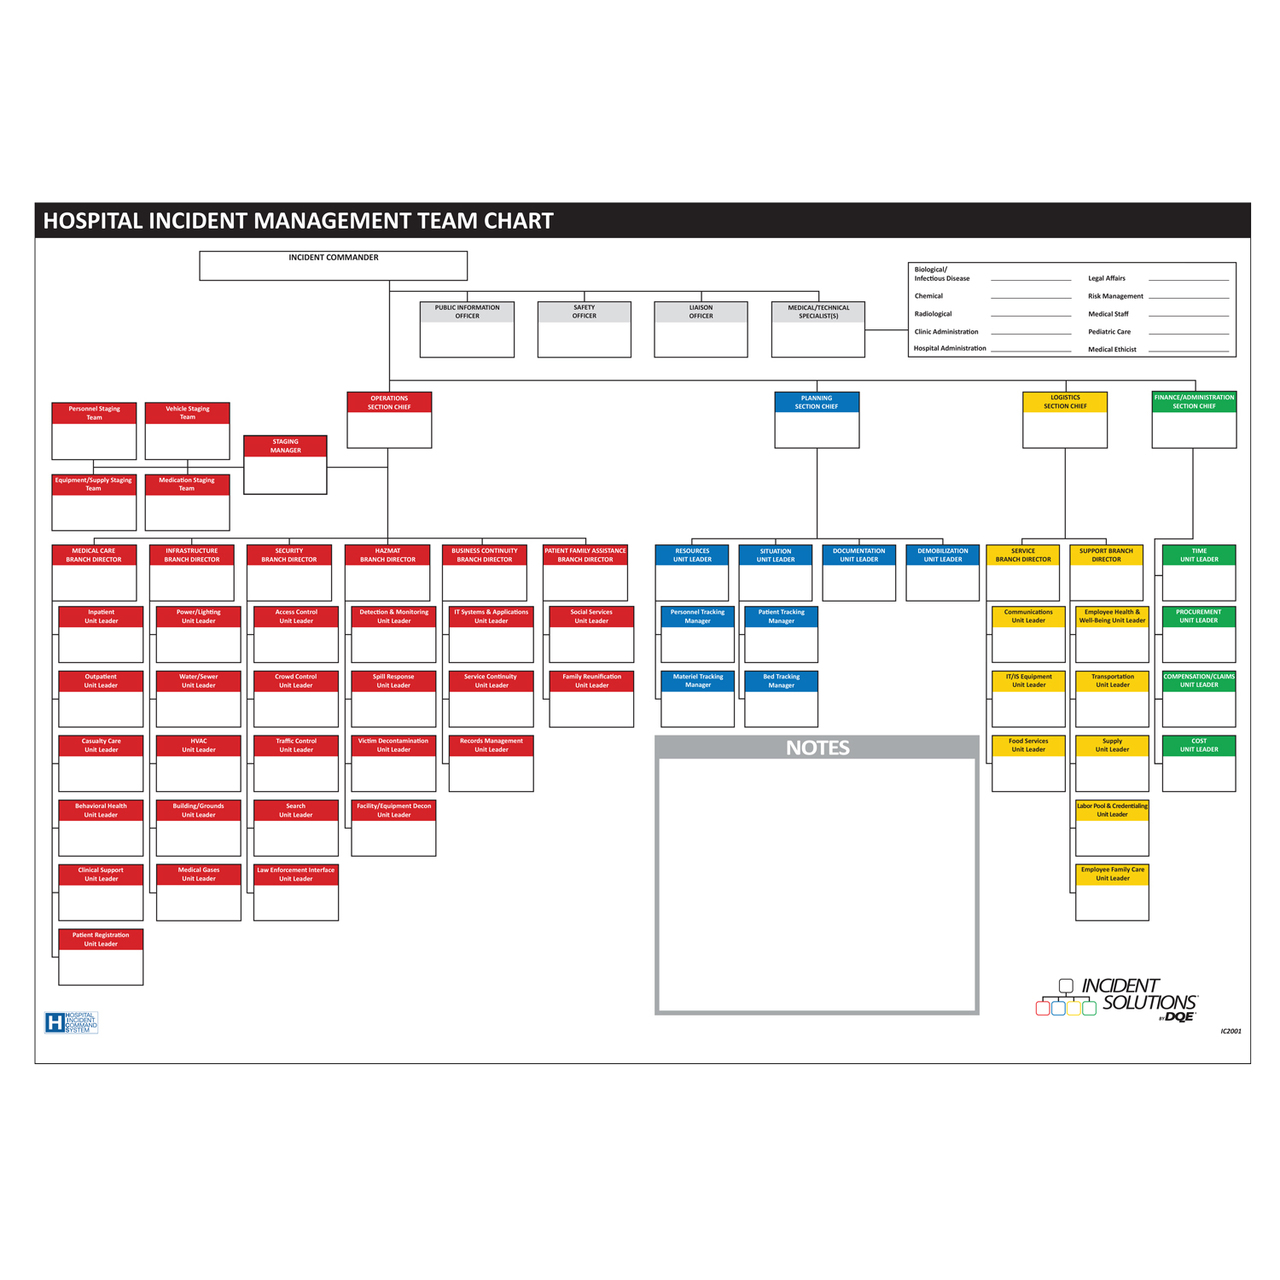 HICS 67 Position HIMT Chart - Dry Erase image